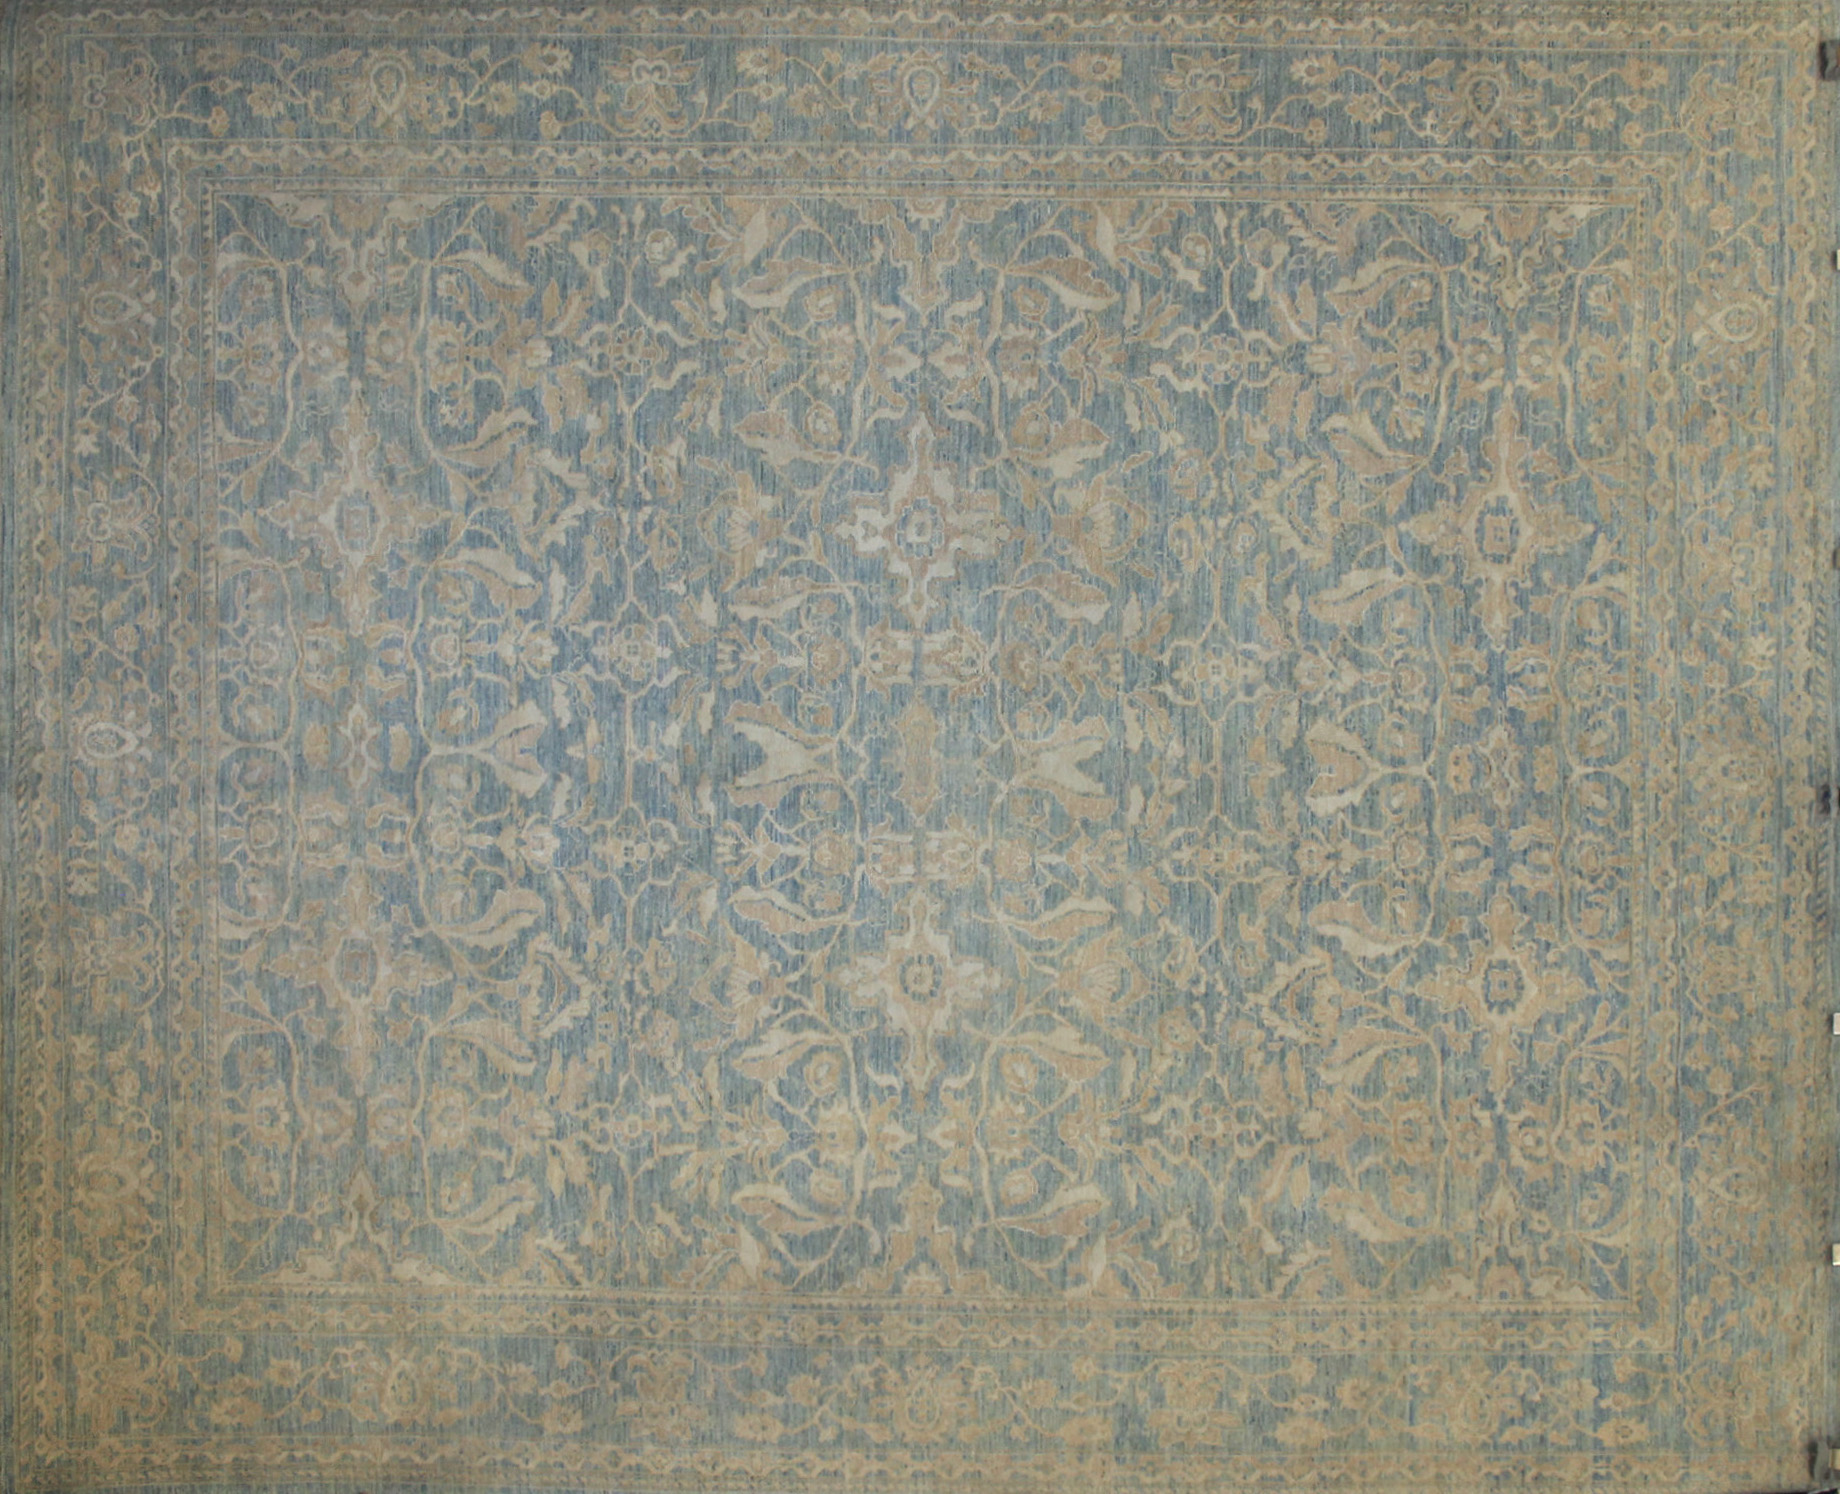 8x10 Peshawar Hand Knotted Wool Area Rug - MR021826